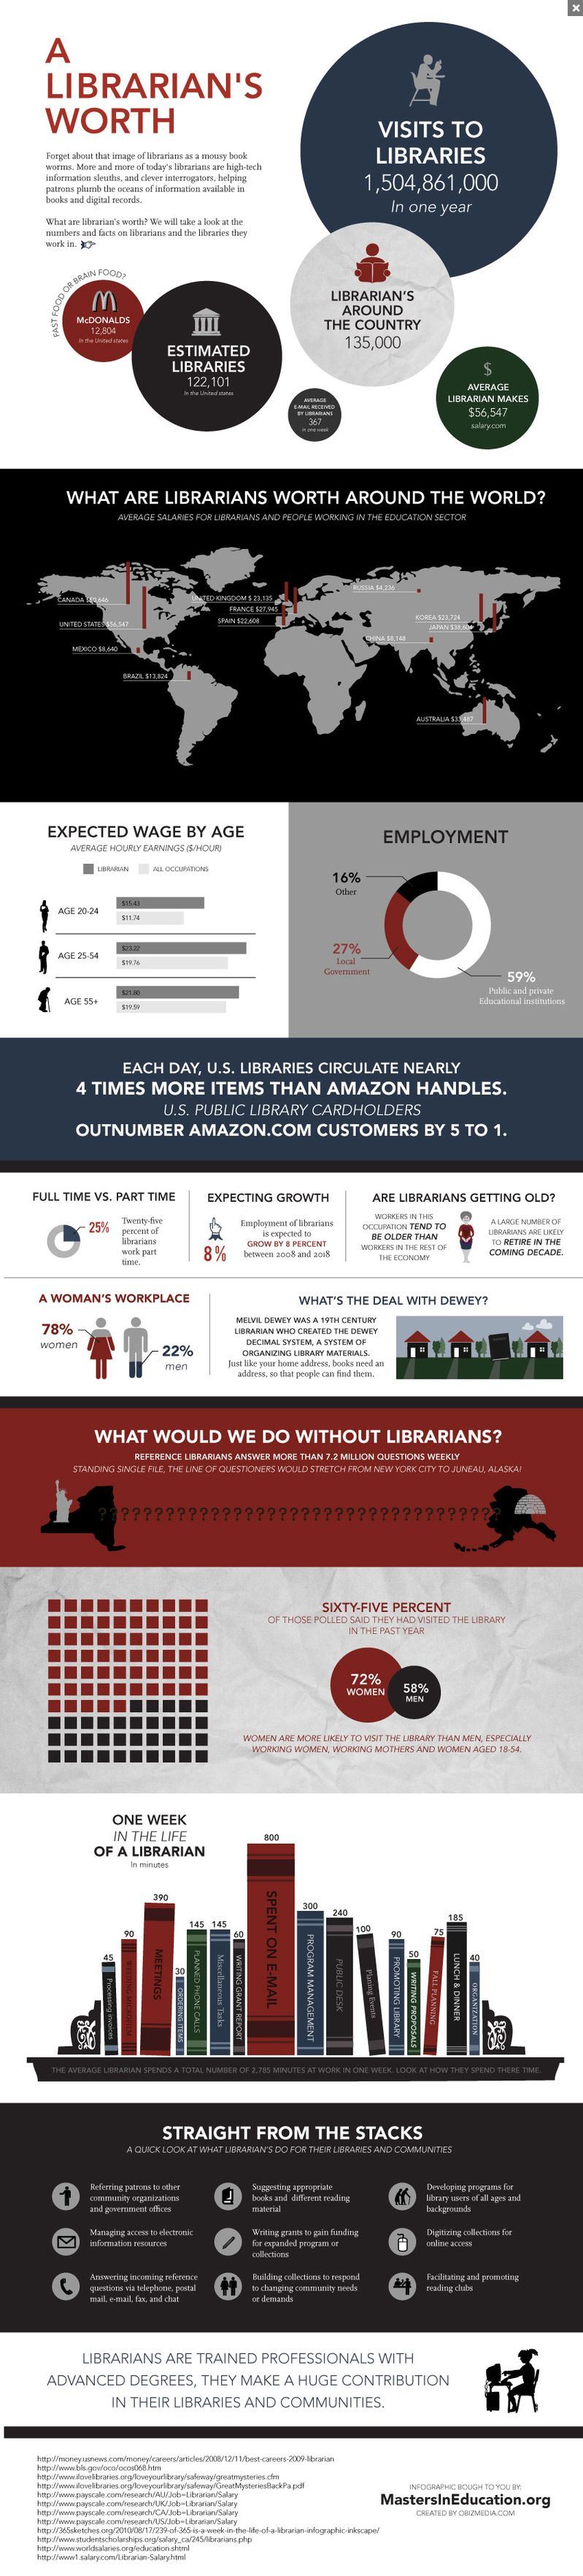 Librarians worth - infographic